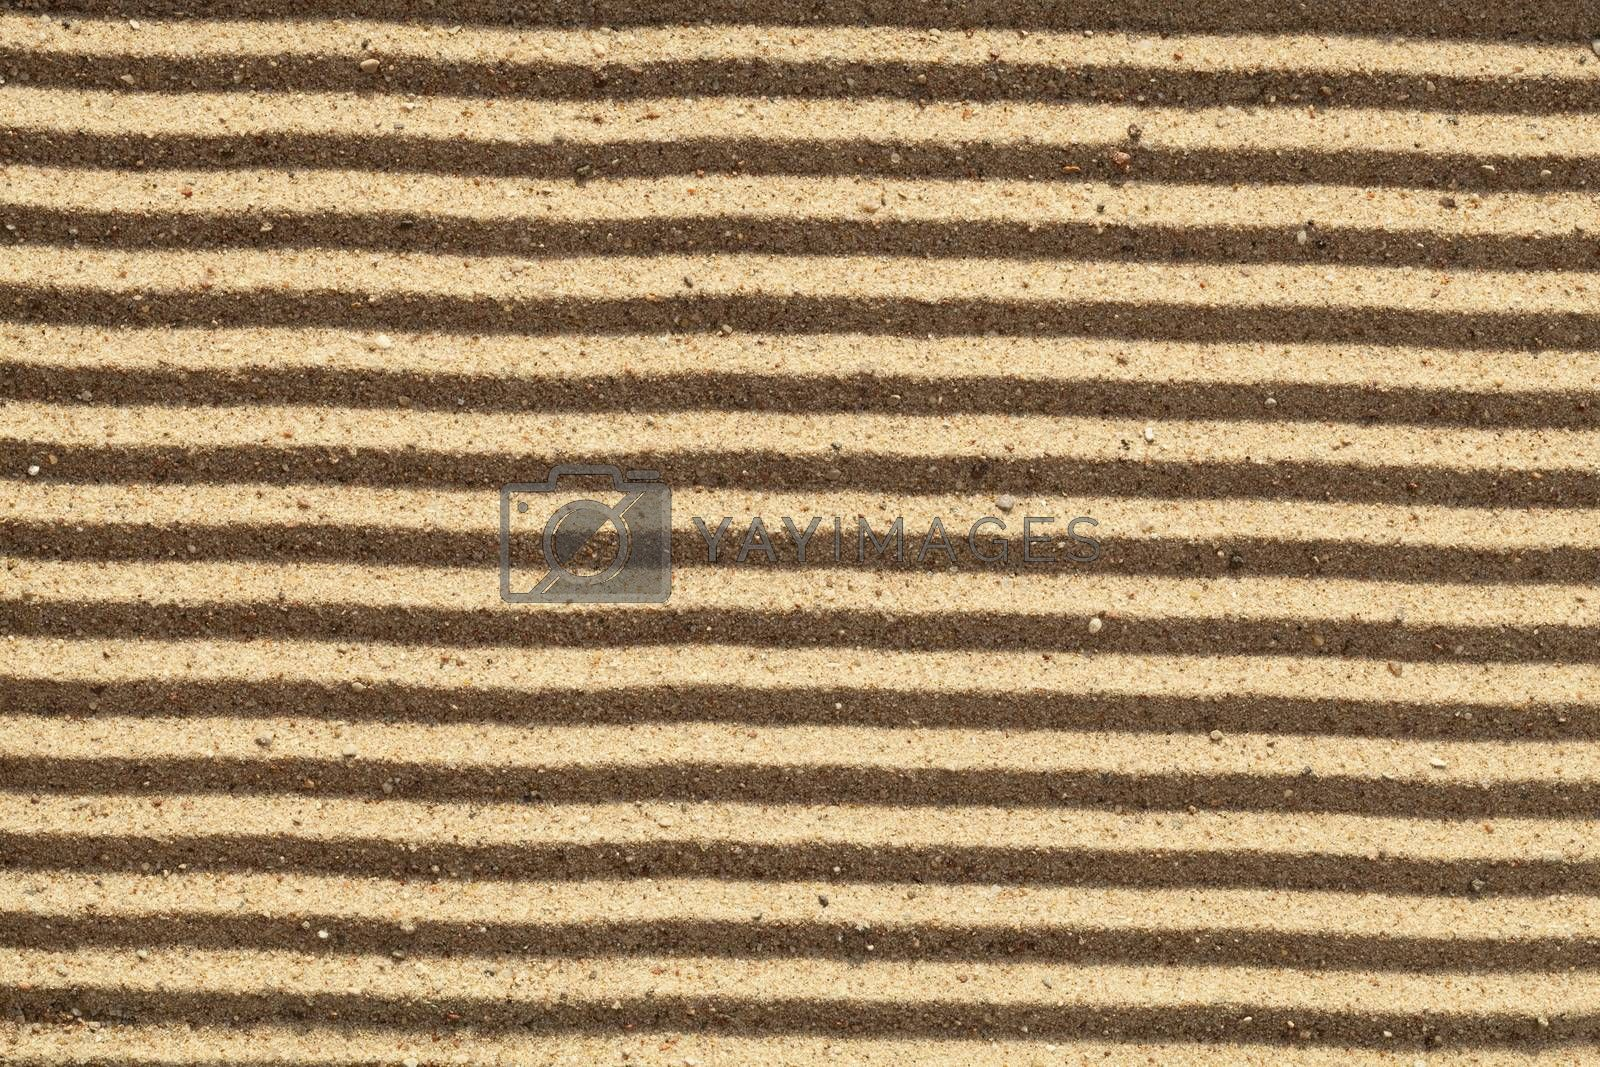 yellow dry sand in stripes as background